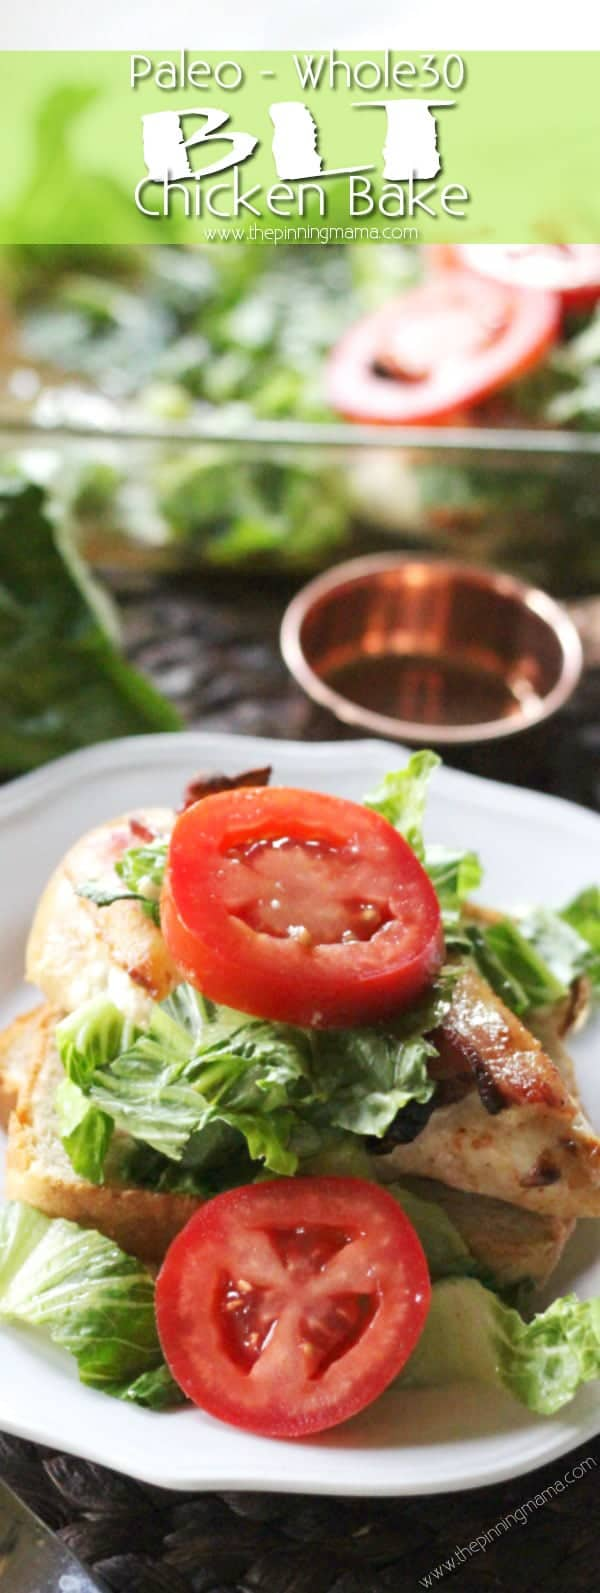 BLT Chicken Bake Recipe - Quick and easy chicken dinner, so delicious AND Paleo + Whole30 compliant recipe. Tender chicken, rich bacon, crisp lettuce, and thick juicy tomatoes, it doesn't get much better than that! I love it when I can find quick recipes because so many seem to take hours to get onto the table! Dairy free, grain free low carb dinner idea!